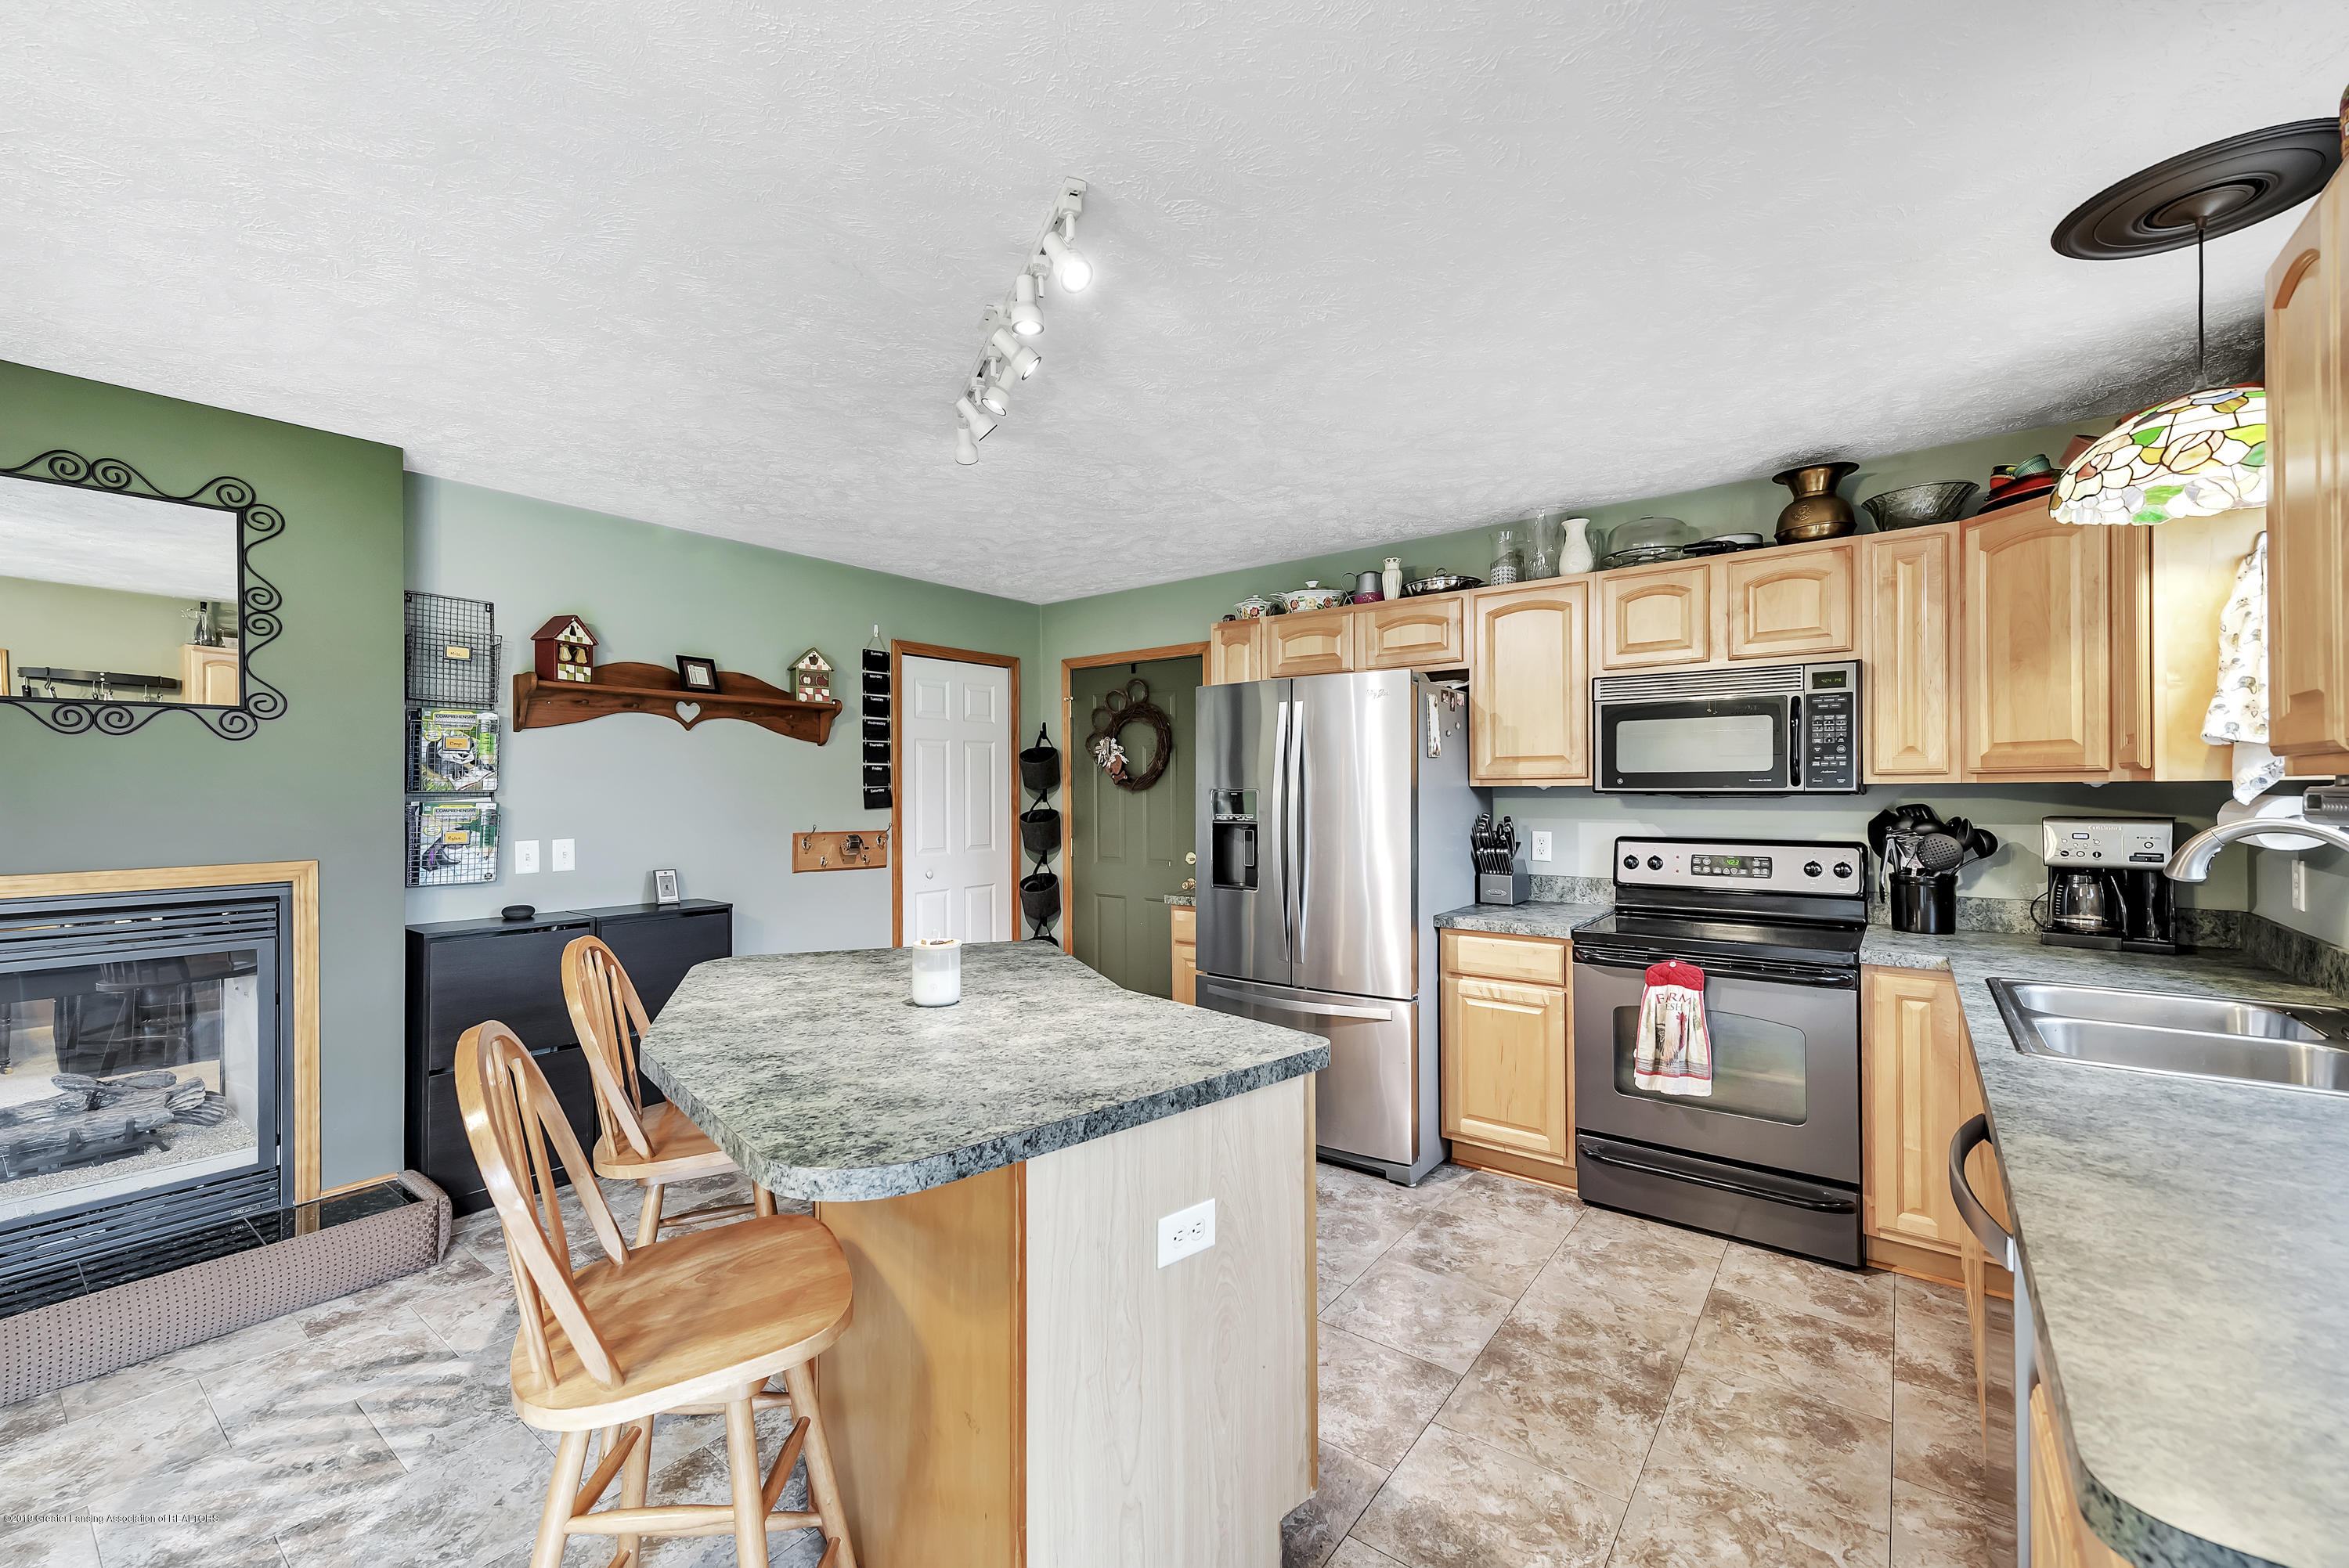 5674 W Barnes Rd - 5674-West-Barnes-Road-Eaton-Michigan-win - 15